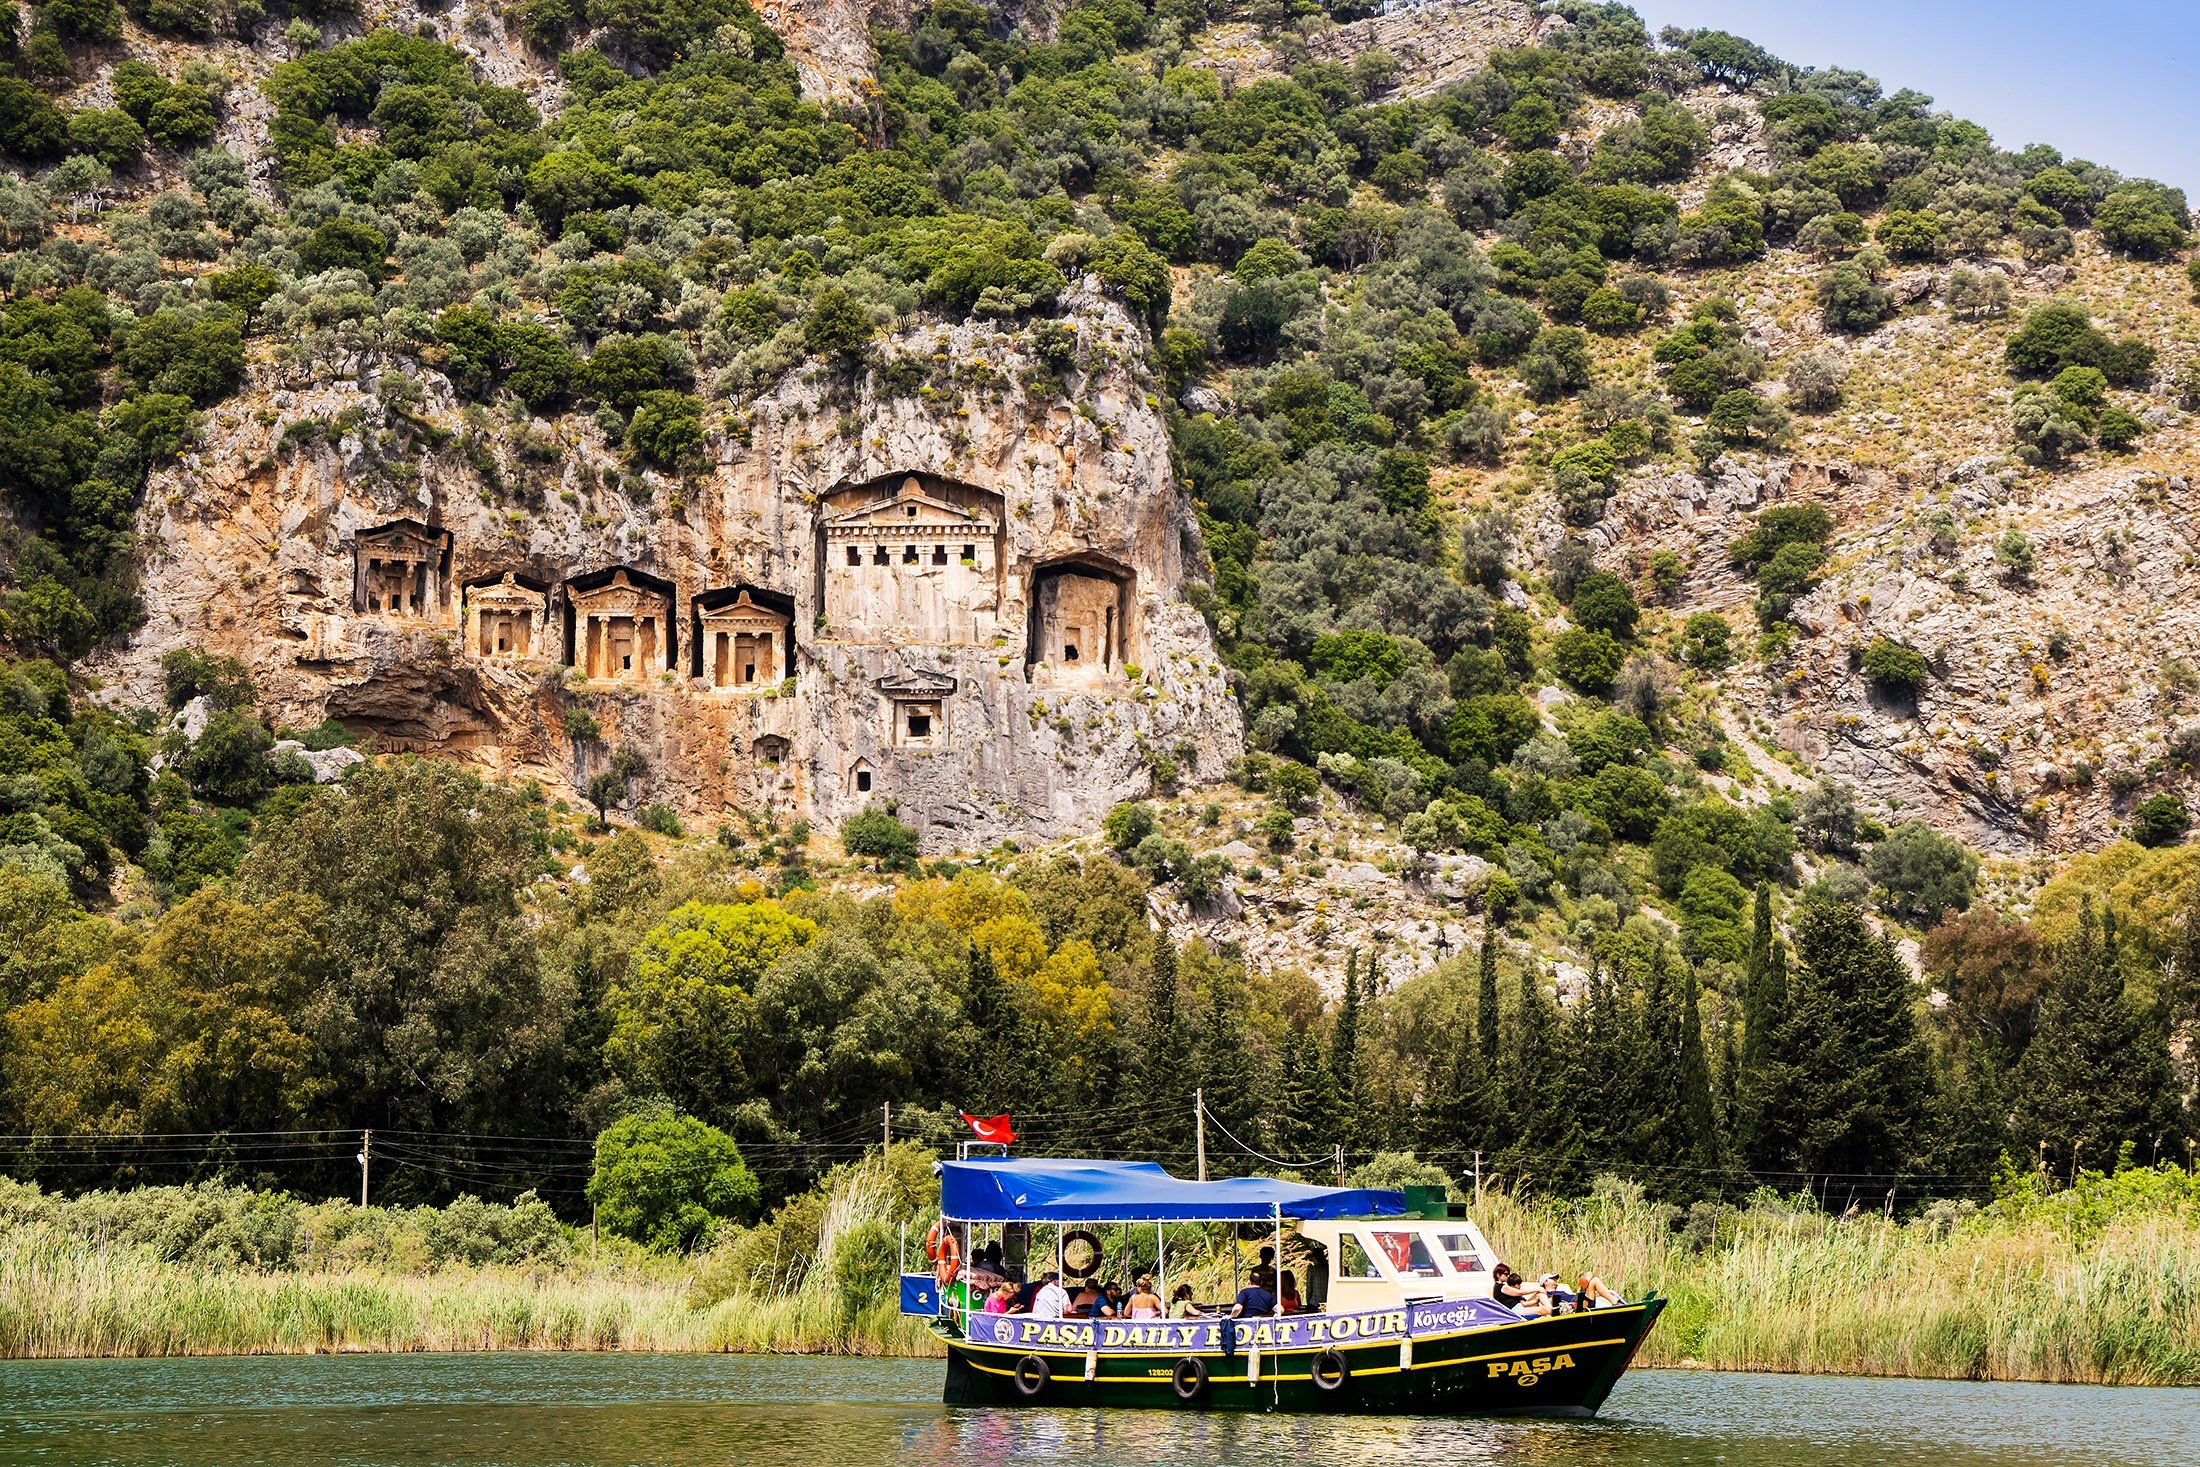 A small boat with tourists on the Dalyan River, Dalyan, Turkey. (Shutterstock Photo)